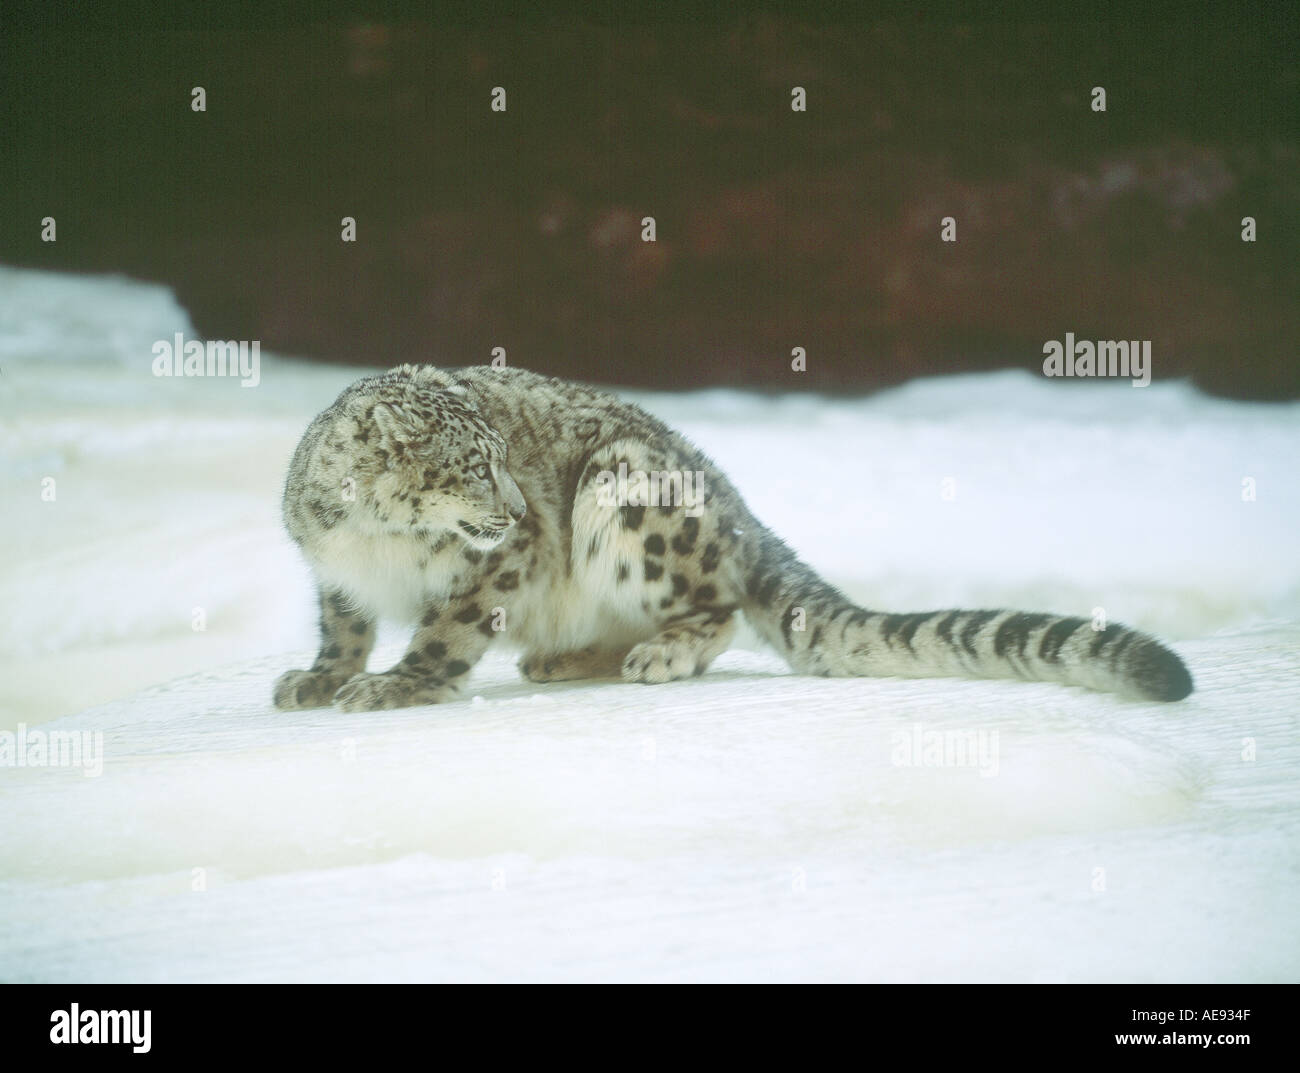 Snow leopard in winter - Stock Image